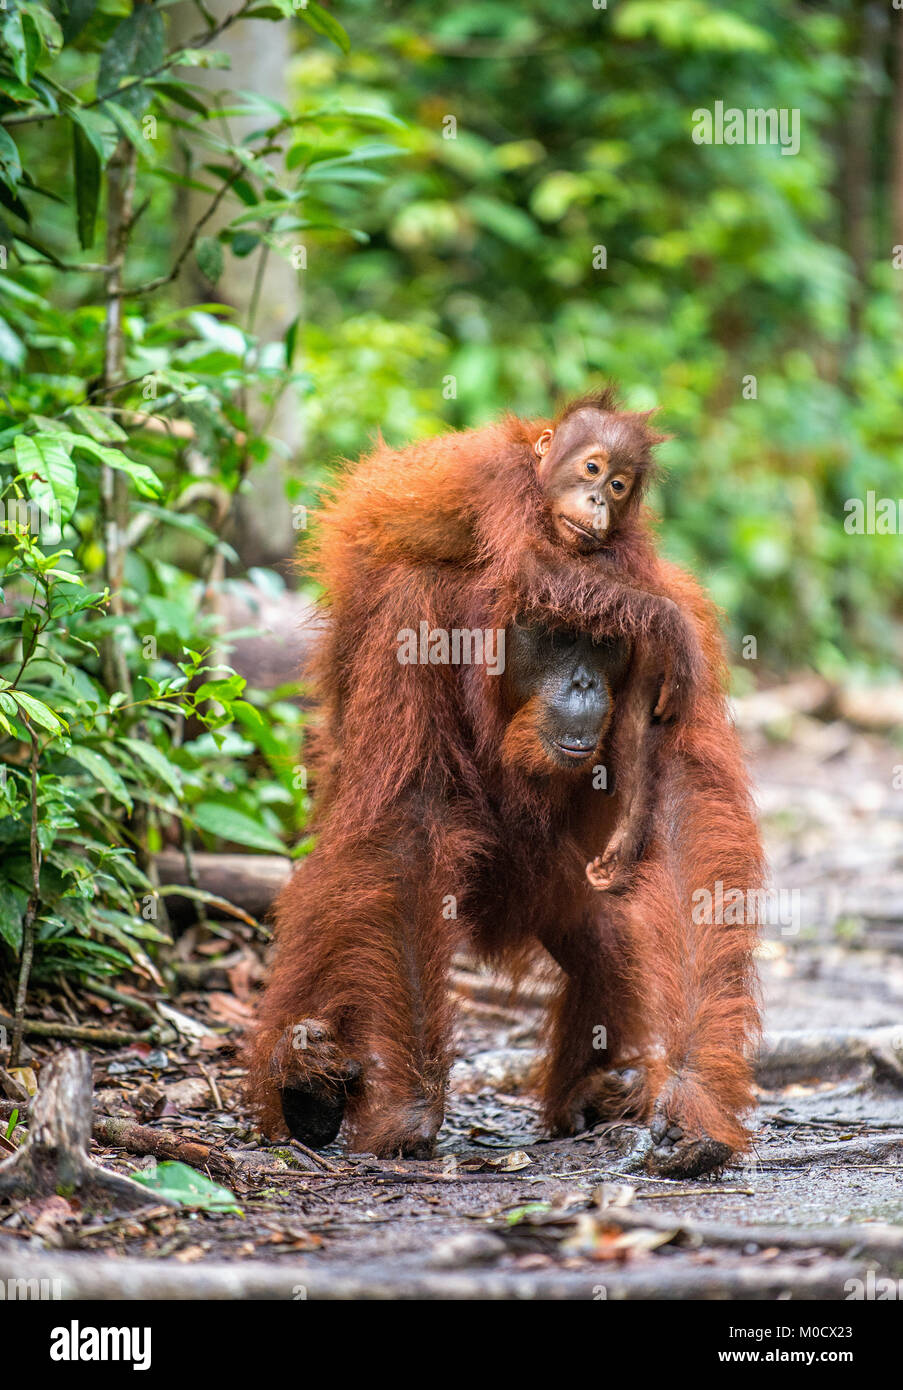 On a mum`s back. Cub of orangutan on mother`s back. Green rainforest. Natural habitat. Bornean orangutan (Pongo - Stock Image